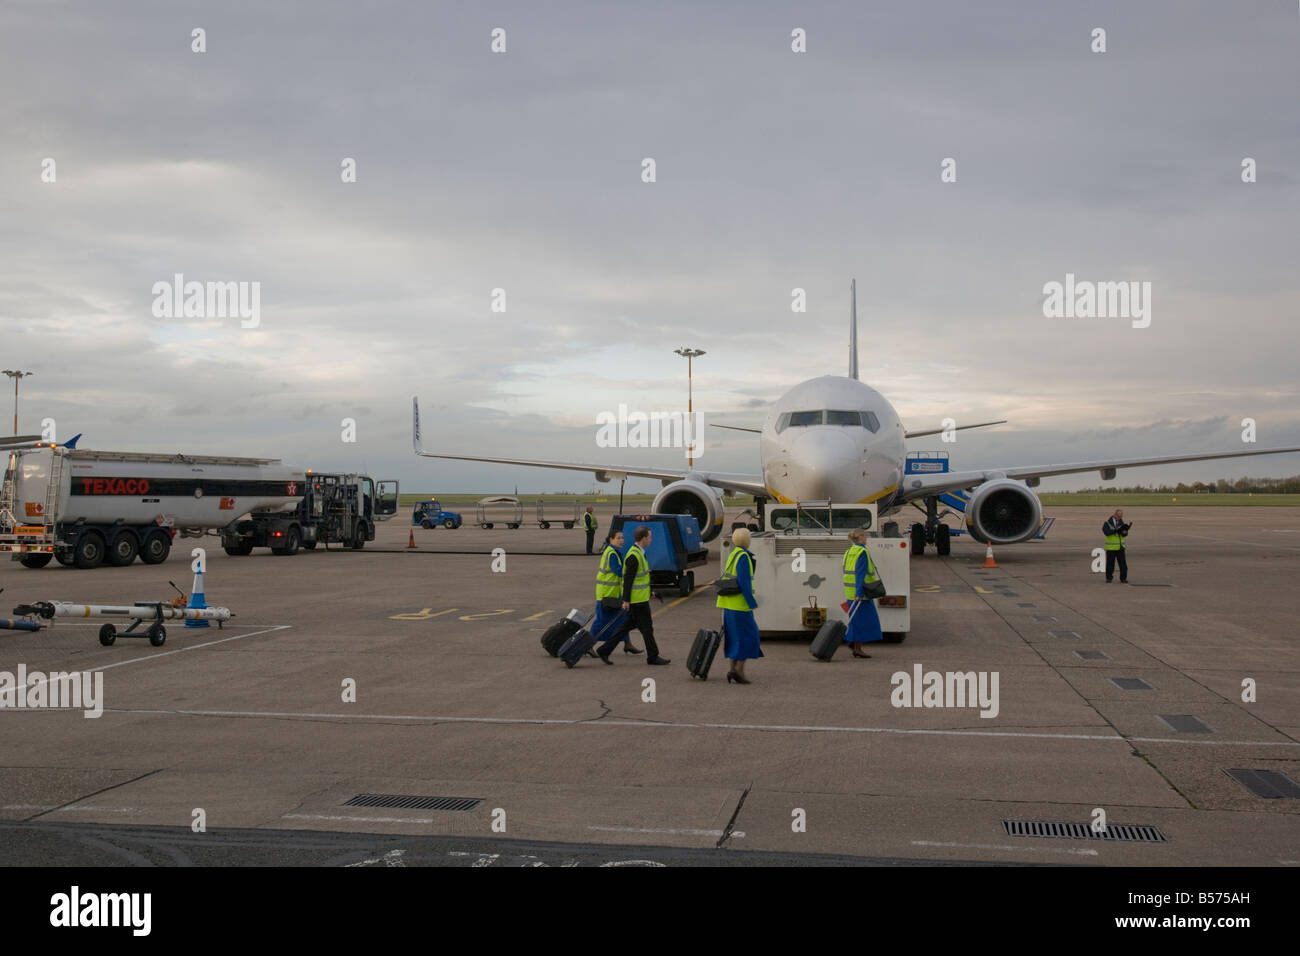 ryanair plane on the tarmac at East Midlands airport  Leicestershire, England - Stock Image